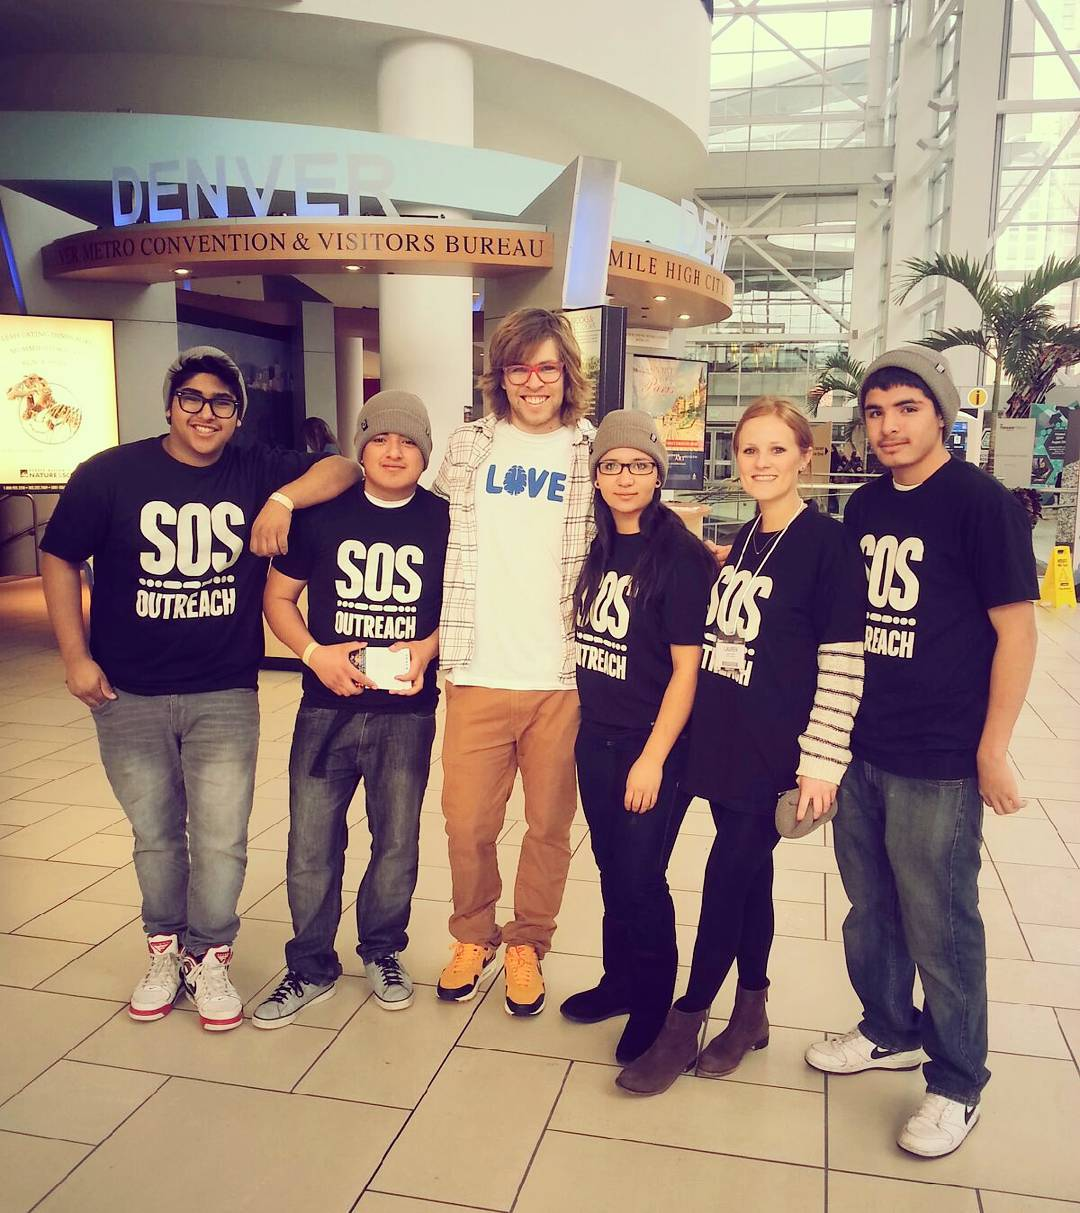 #flashbackfriday to when our SOS #Denver youth got to meet the legendary @kevinpearce ! A great opportunity to meet one of the most #inspiring snowboarders to bless our slopes. #LoveYourBrain #SpreadtheLove